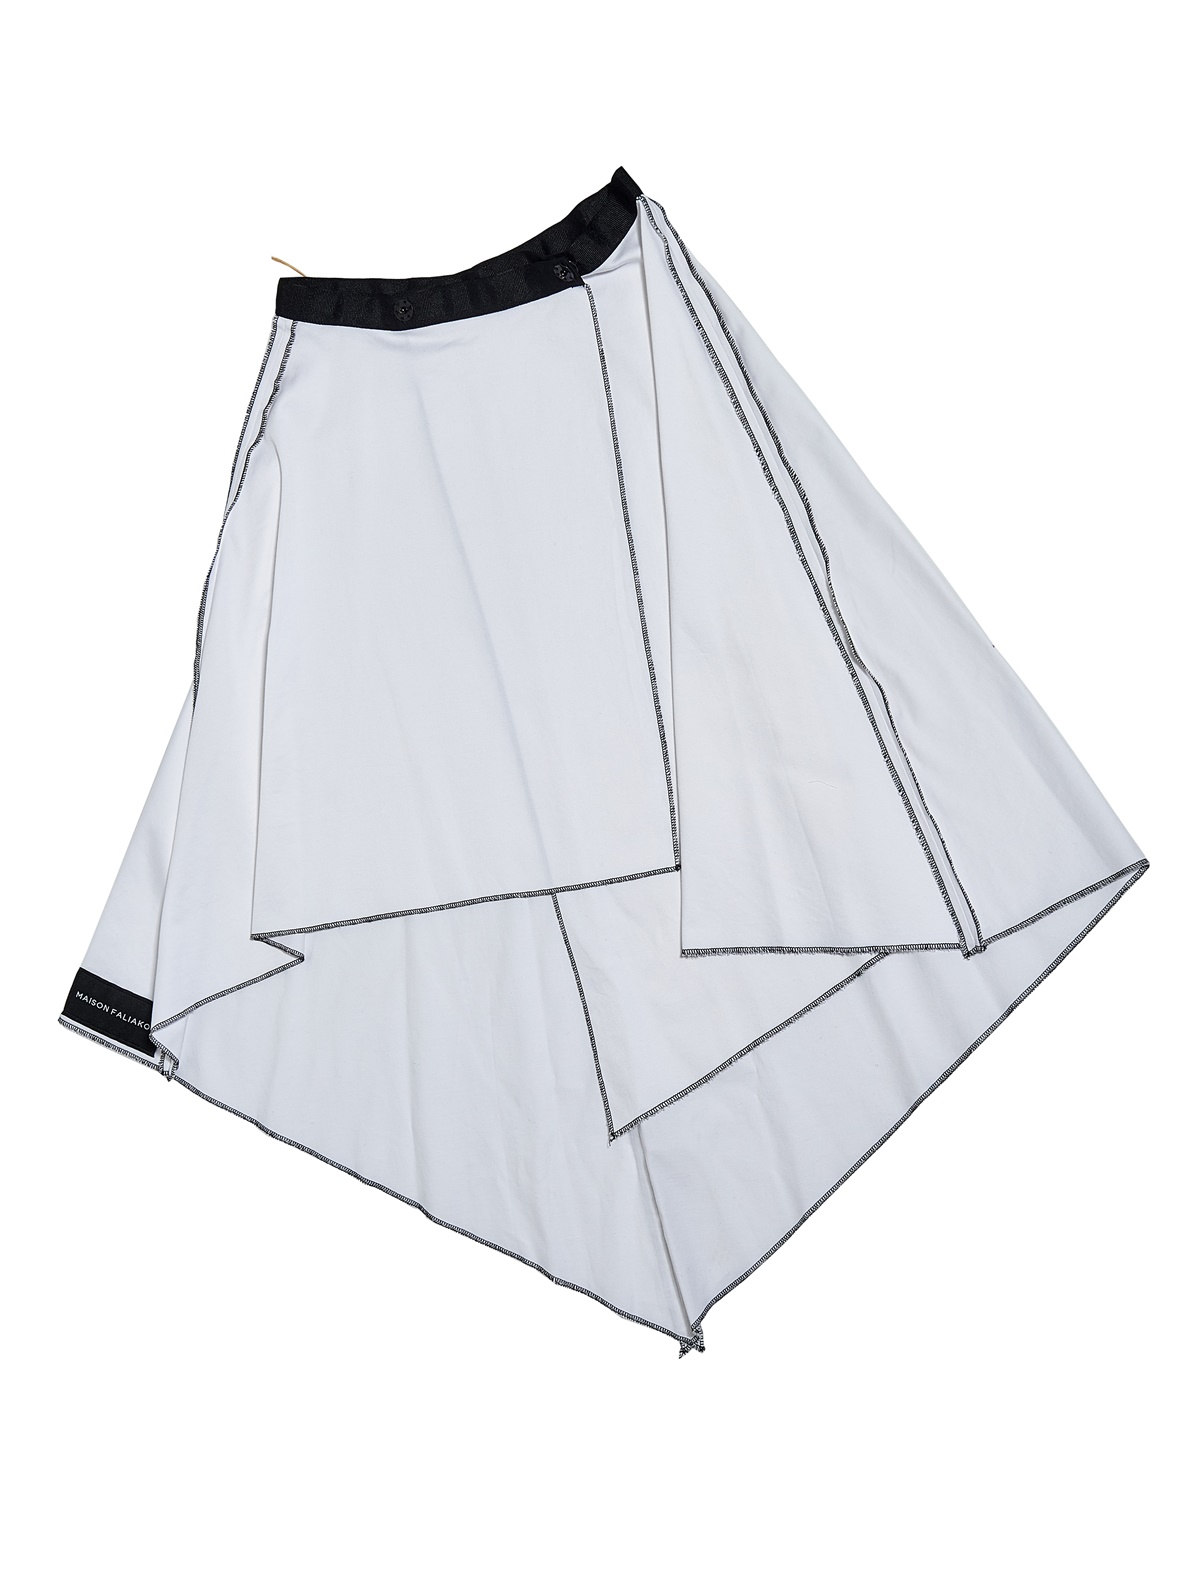 Maison Faliakos polymorphic skirt, Fashion Project with Think Feel Discover for LFW Feb19